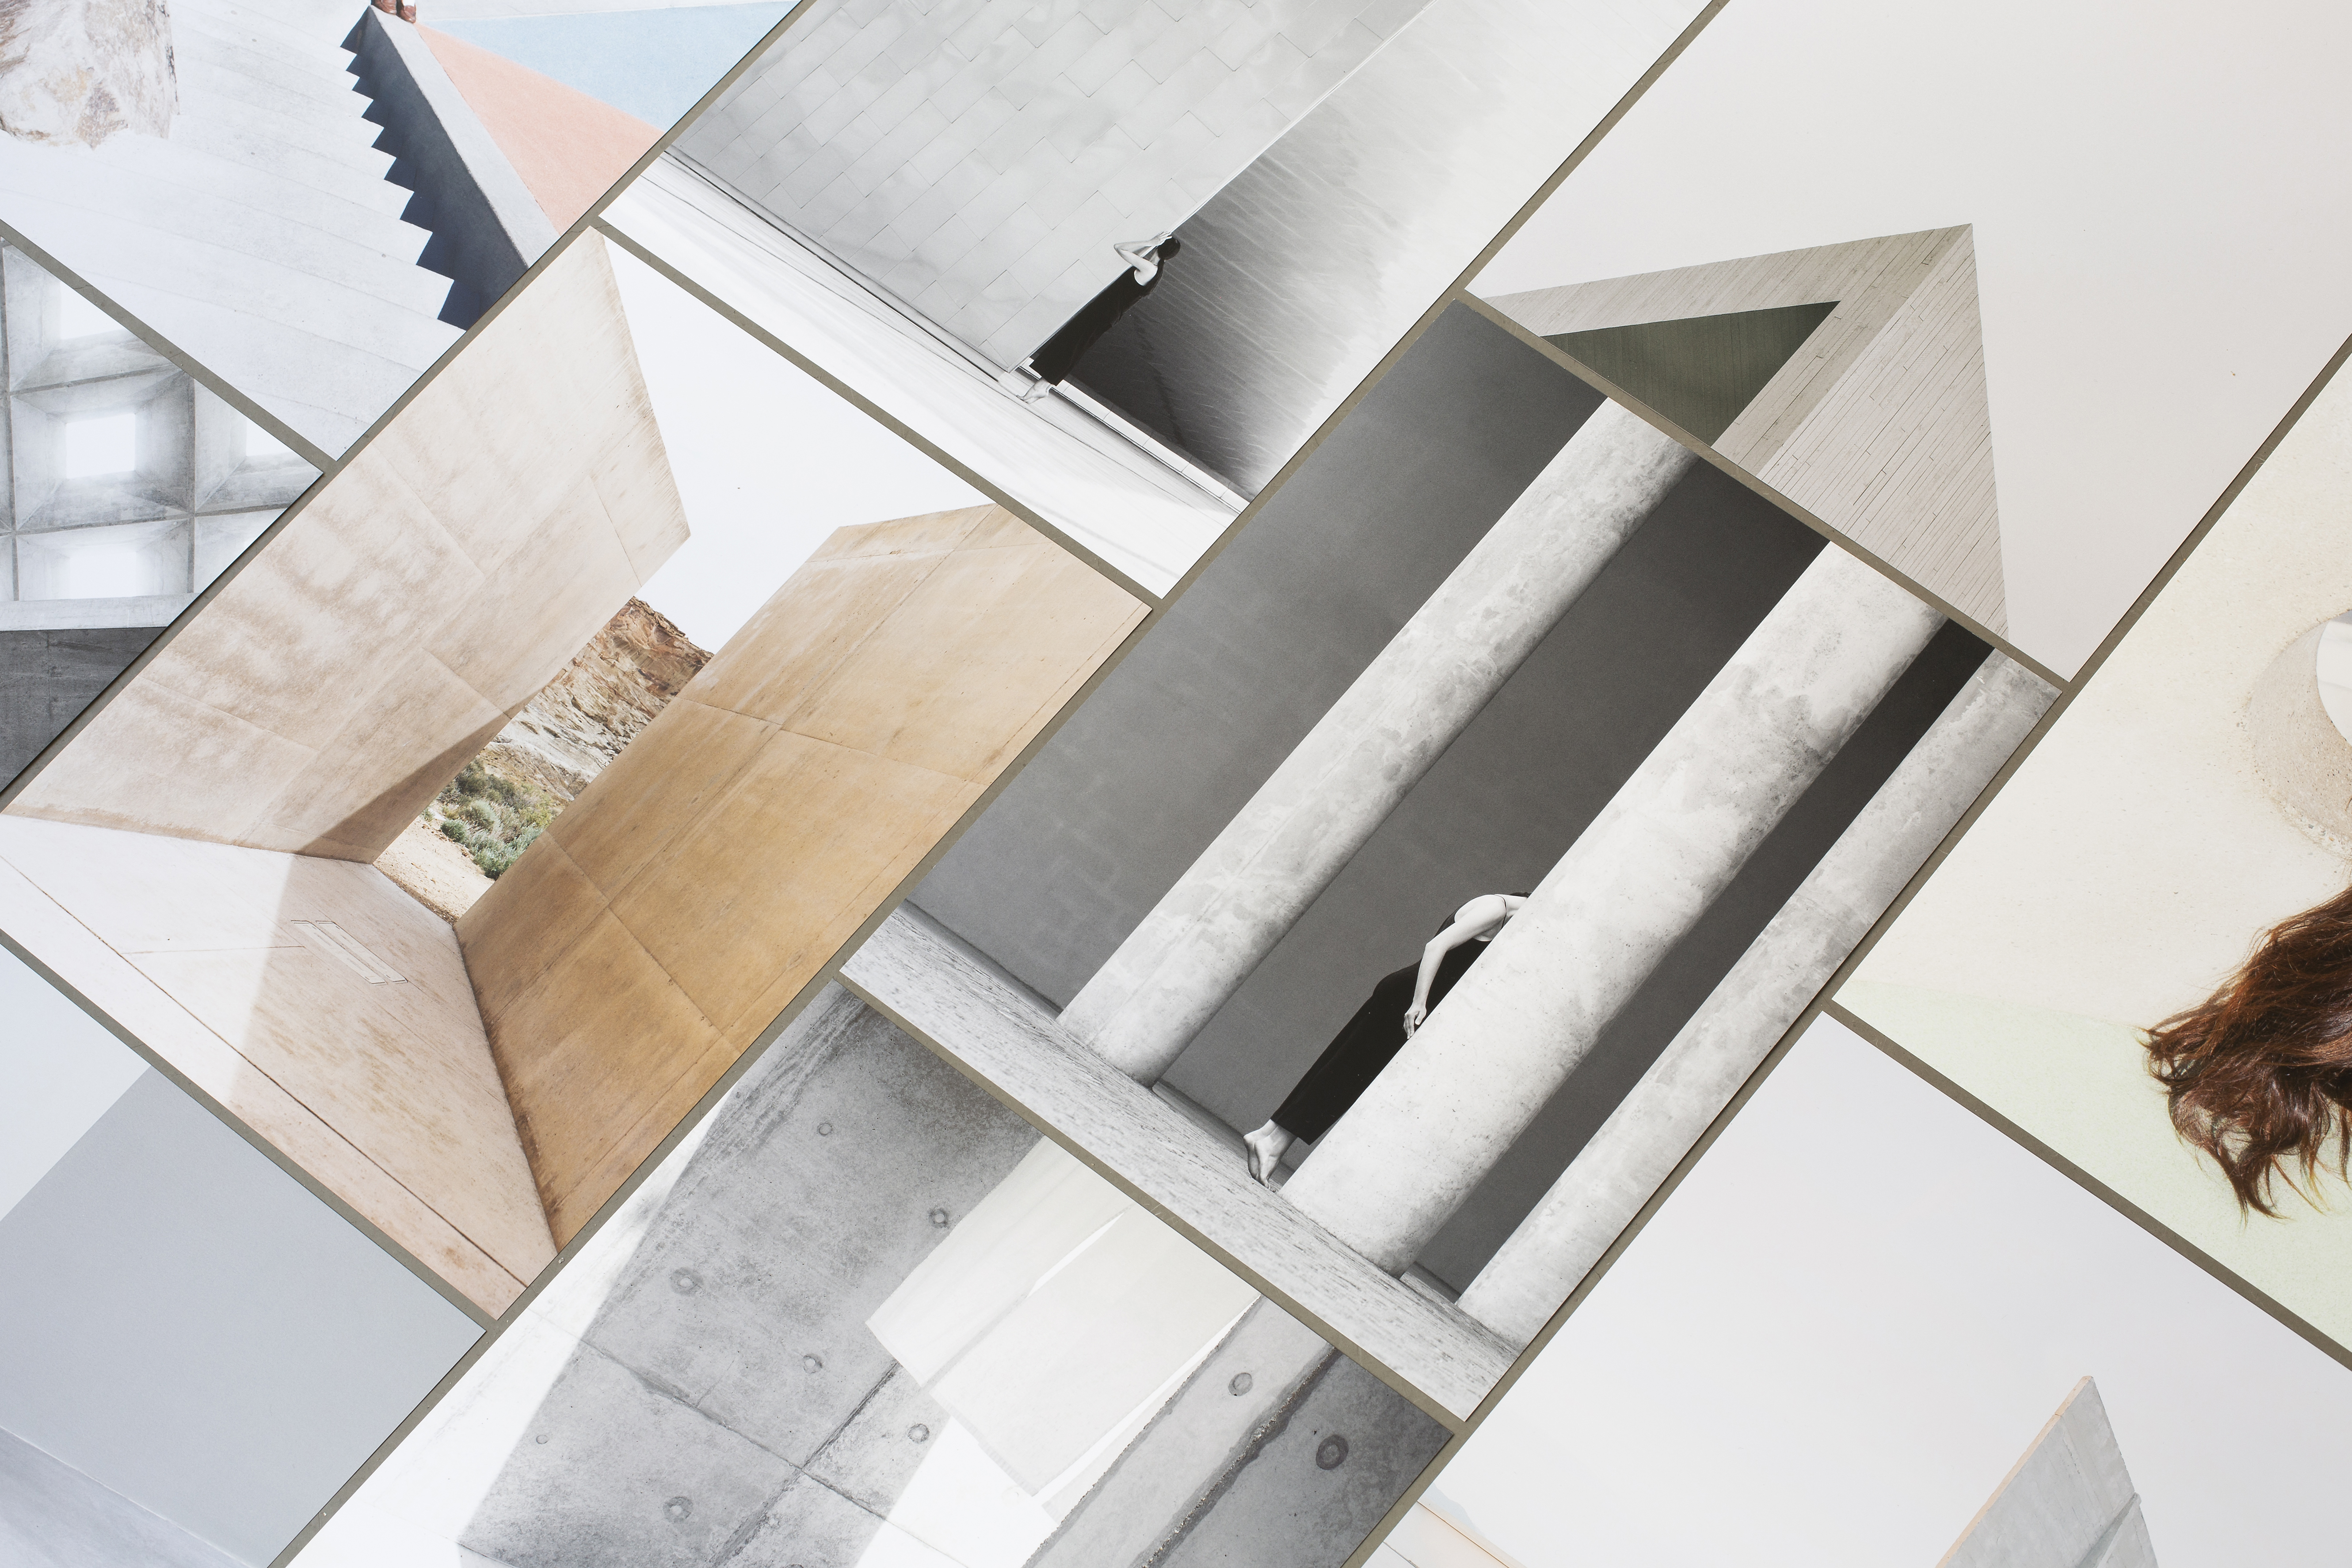 Paper Collective x Jonas Bjerre-Poulsen: The Architecture Collection